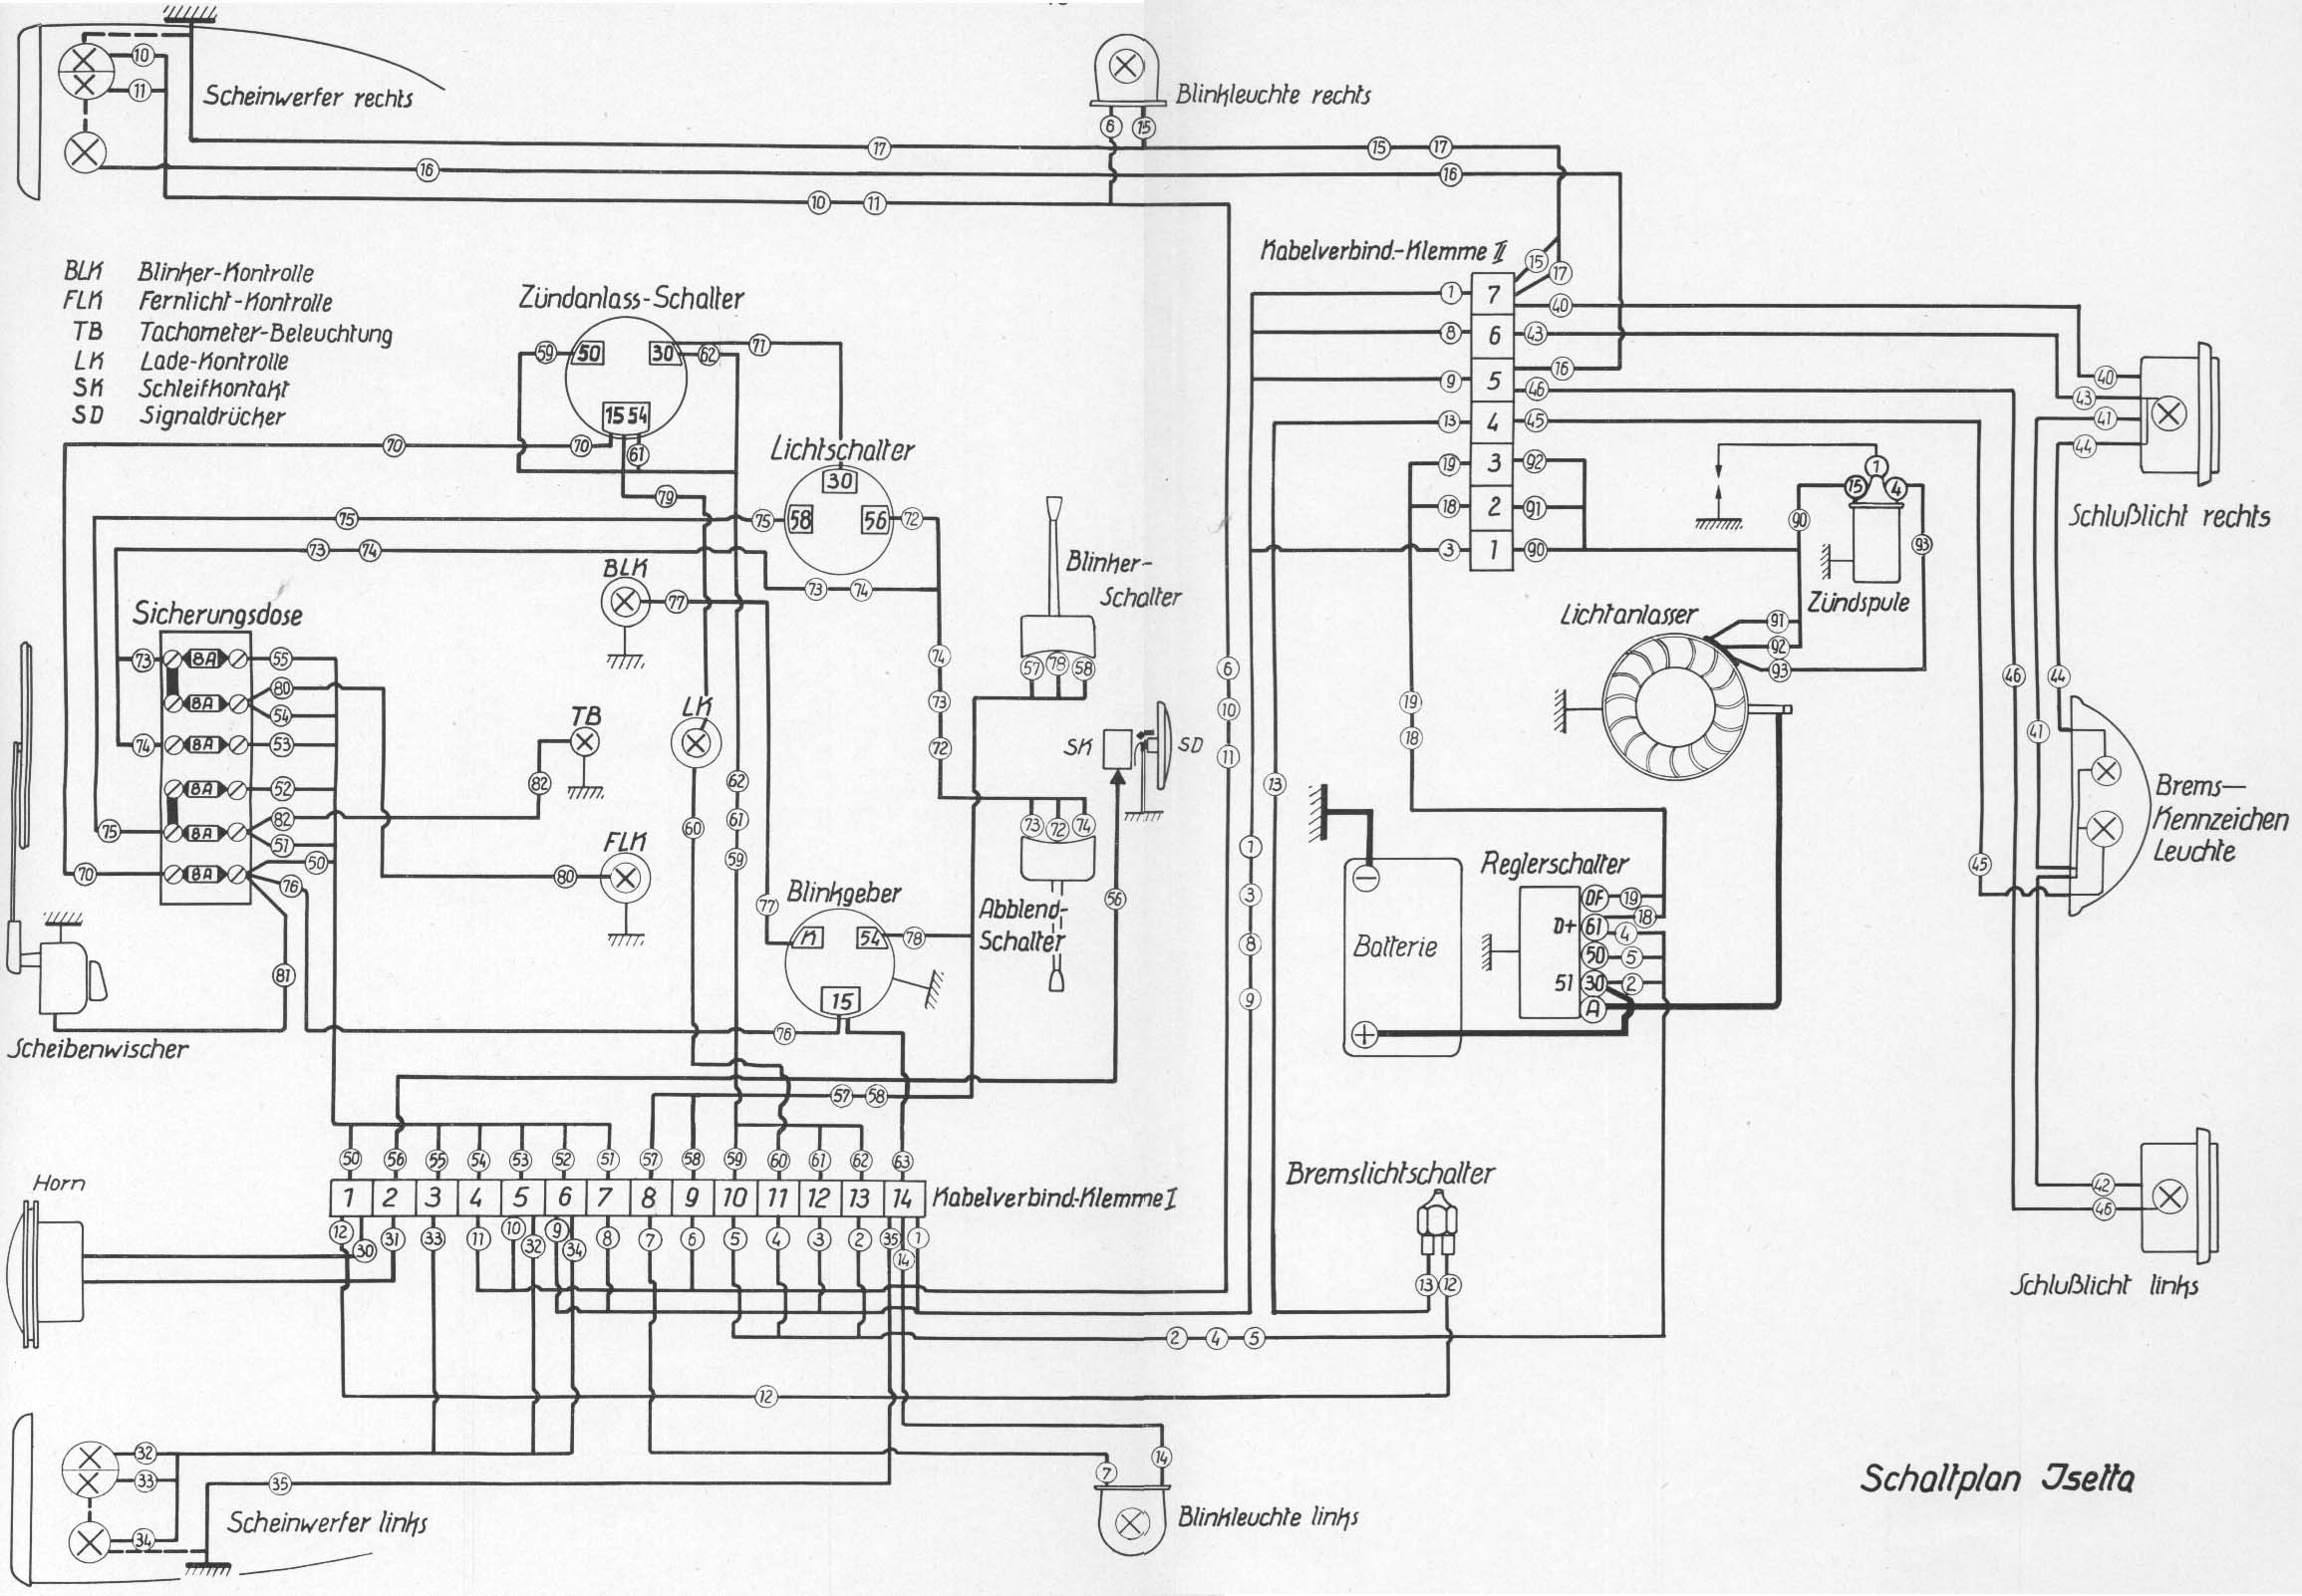 dynastart wiring diagram les paul jr p90 isettas in south carolina